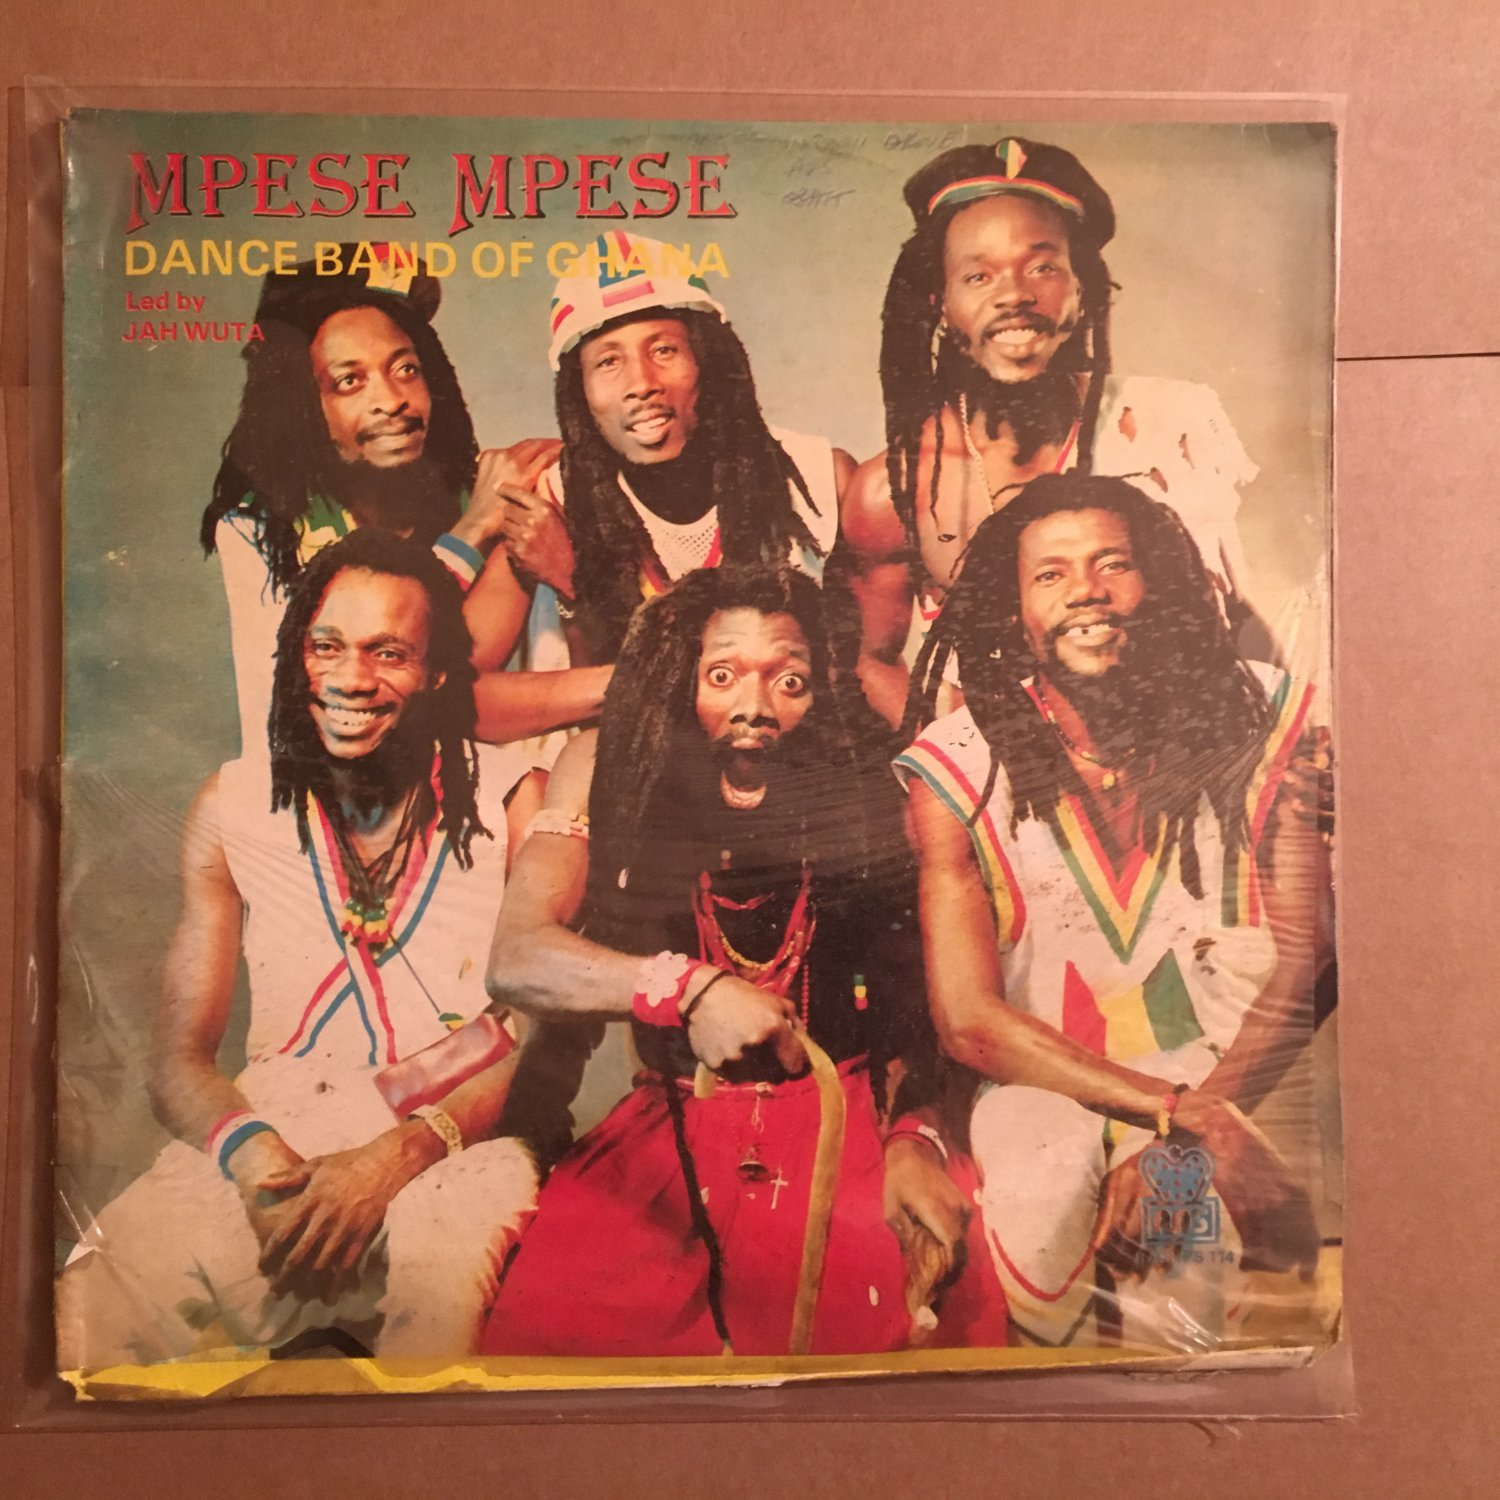 MPESE MPESE DANCE BAND led JAH WUTA LP same GHANA HIGHLIFE mp3 LISTEN